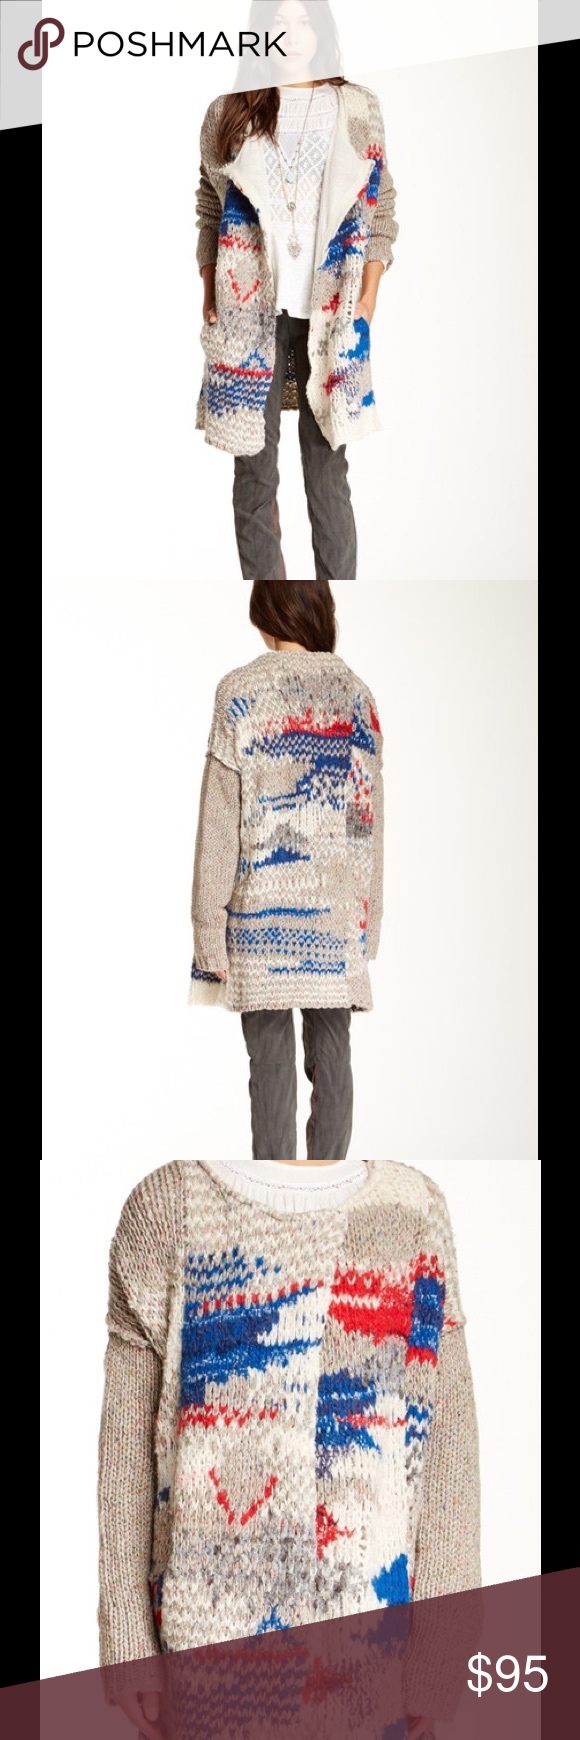 "🆕 Free People Fireworks Chunky Cardigan - Crew neck  - Long sleeves  - Front hidden snap closure  - 2 front slash pockets  - Knit construction  - Lined  - Approx. 31 1/2"" length  - Imported  Fiber Content 46% wool, 37% acrylic, 9% silk, 5% nylon, 1% spandex, 1% alpaca, 1% other fibers  Care Hand wash  Fit: this style fits true to size.  Brand new with tag. Retail price $298. Free People Sweaters Cardigans"